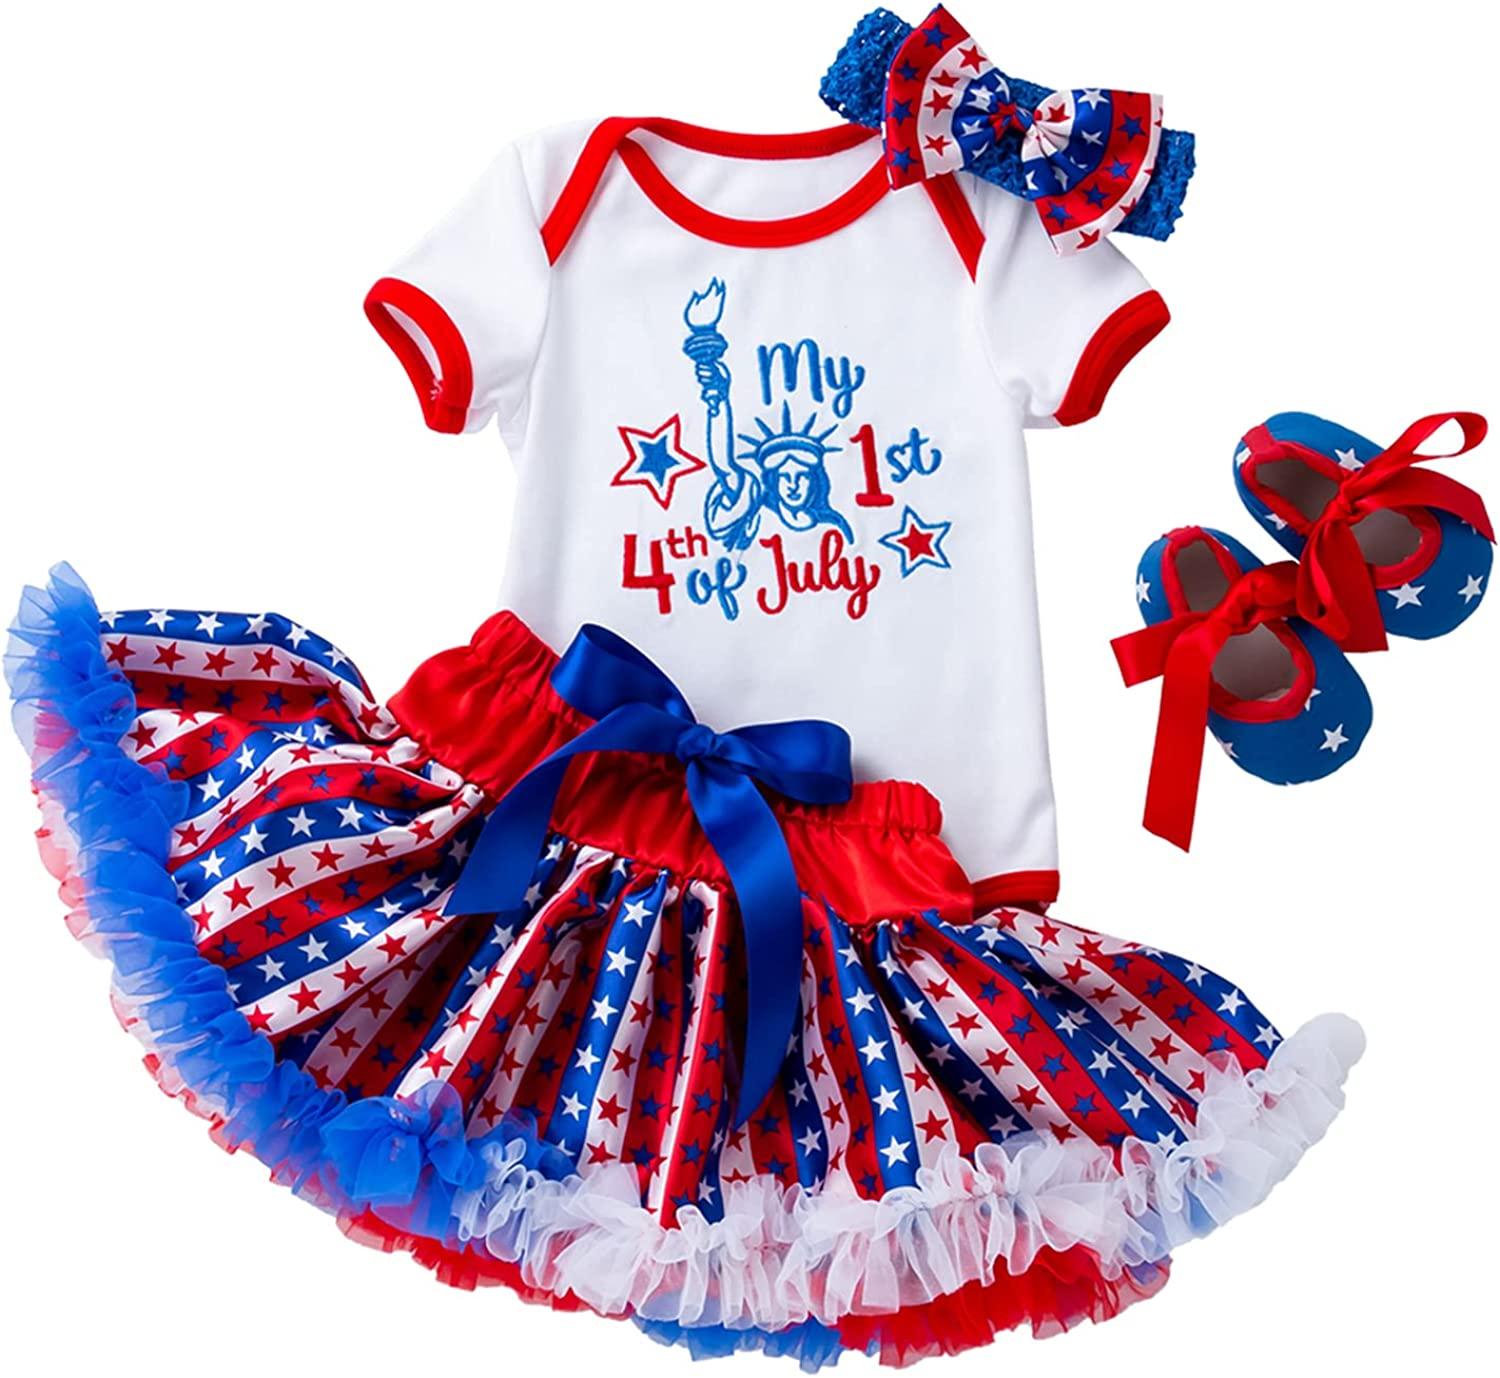 Flower Frail My First 4th of July Baby Girl Outfits American Flag Embroidery Romper+ Tutu Skirt+ Headband+ Shoes Set: Clothing